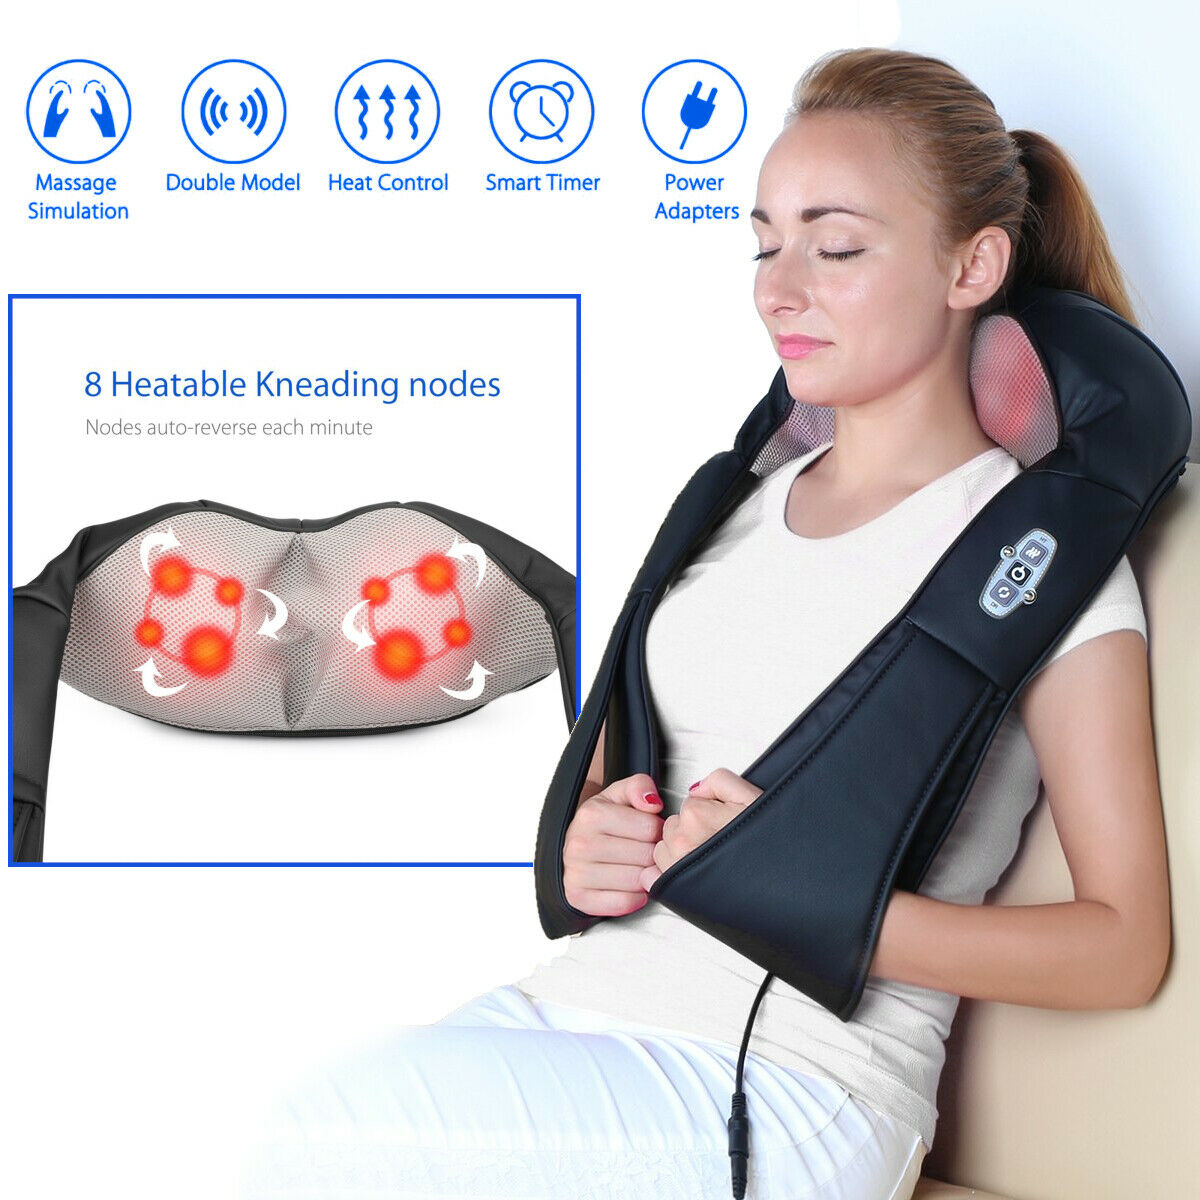 Cordless Shiatsu Back and Neck Shoulder Kneading Massager Rechargeable with Heat Car Adapter